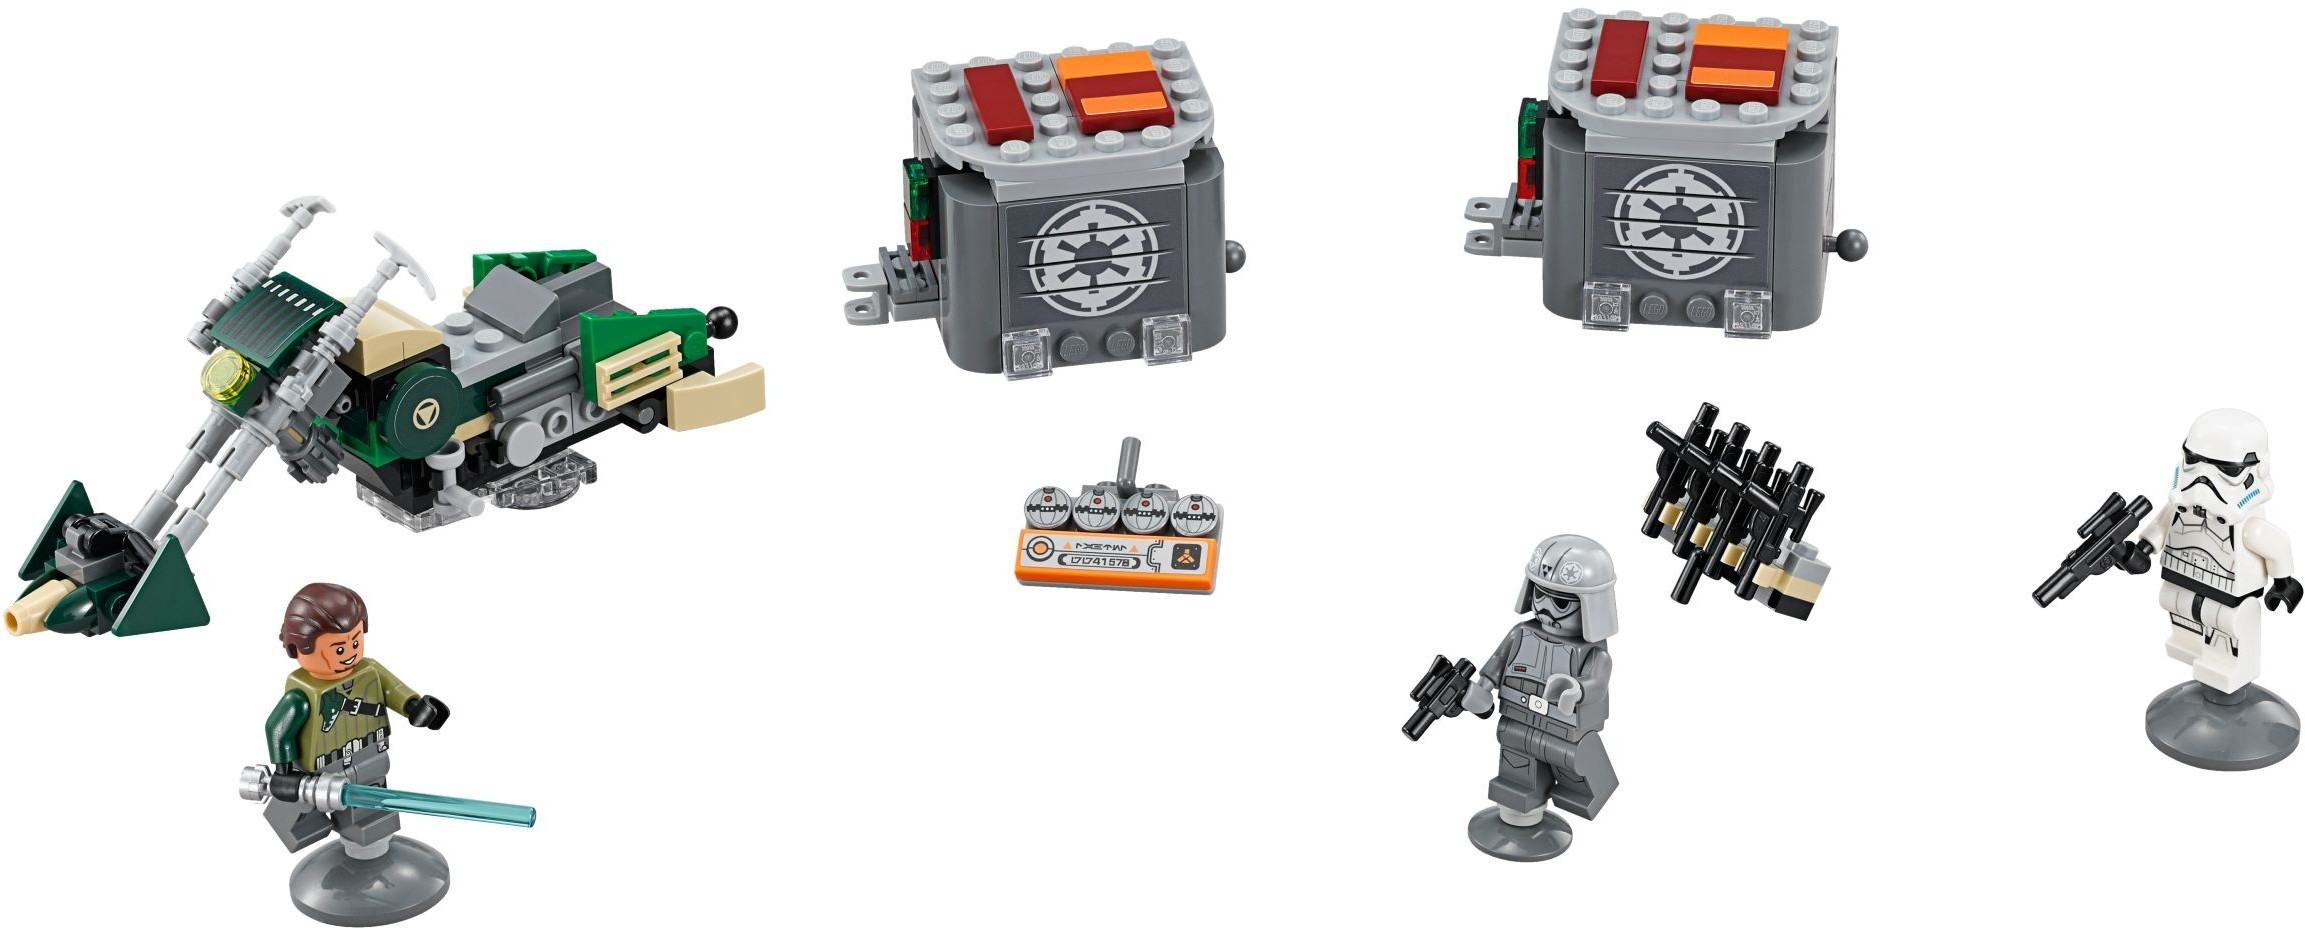 Star Wars Tagged Stormtrooper Brickset Lego Set Guide And